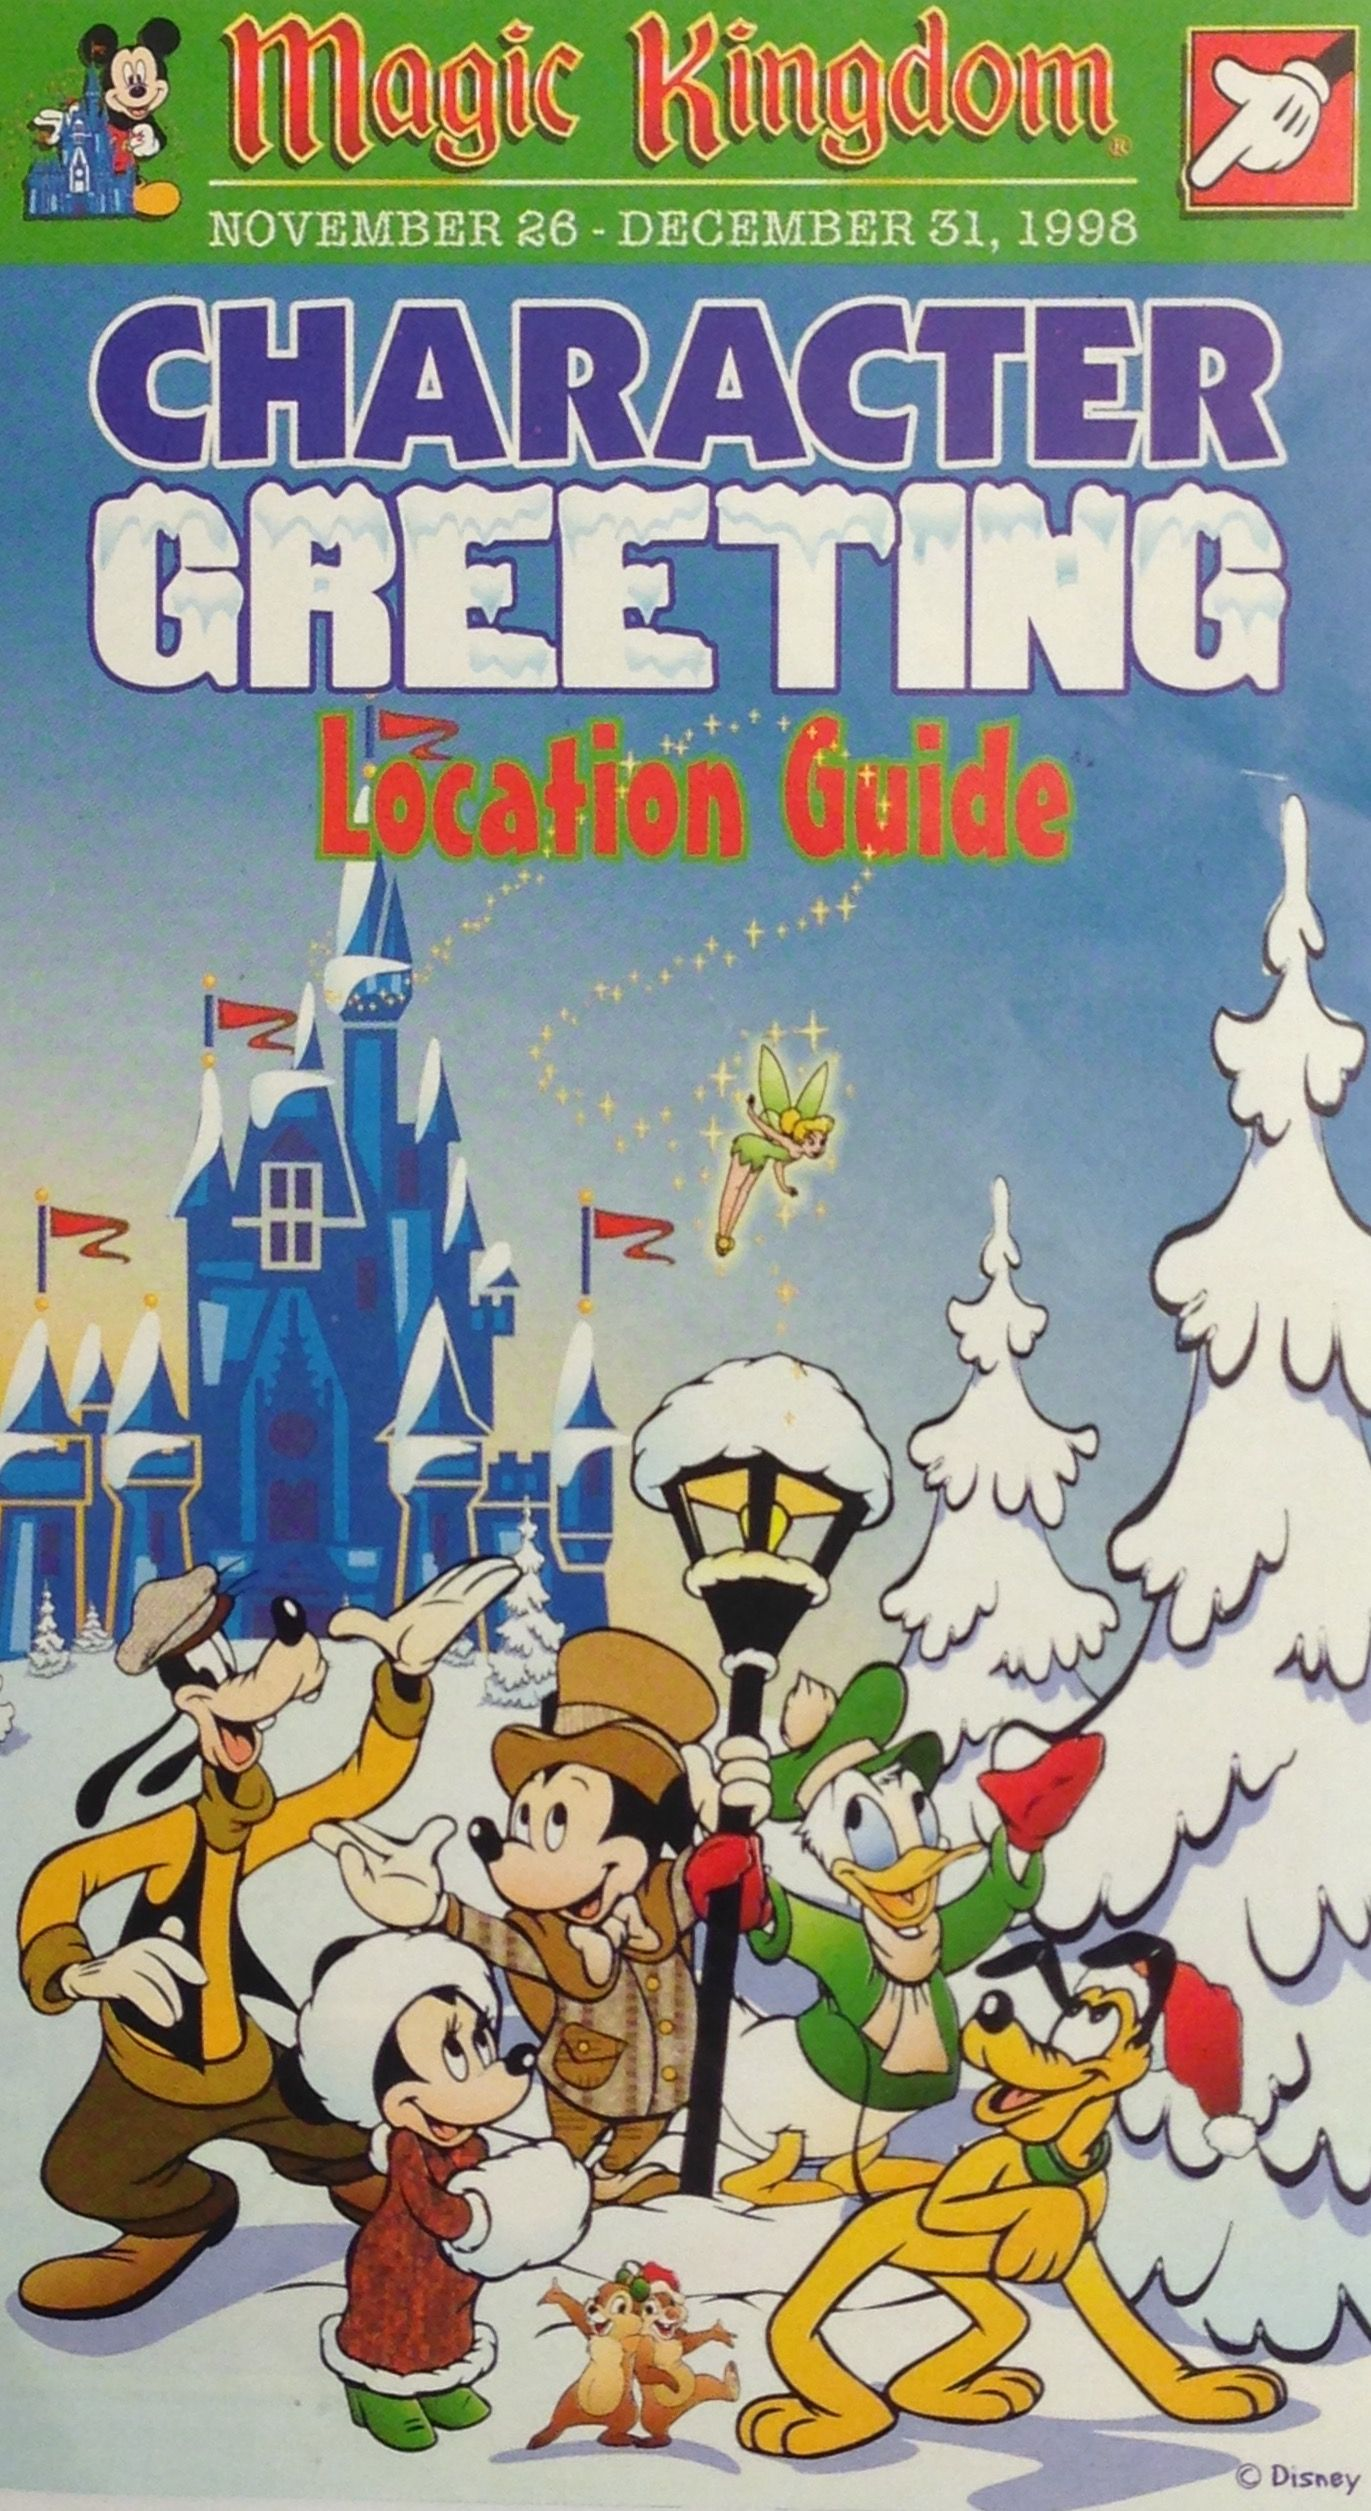 Character greeting map from 1998. Disney christmas